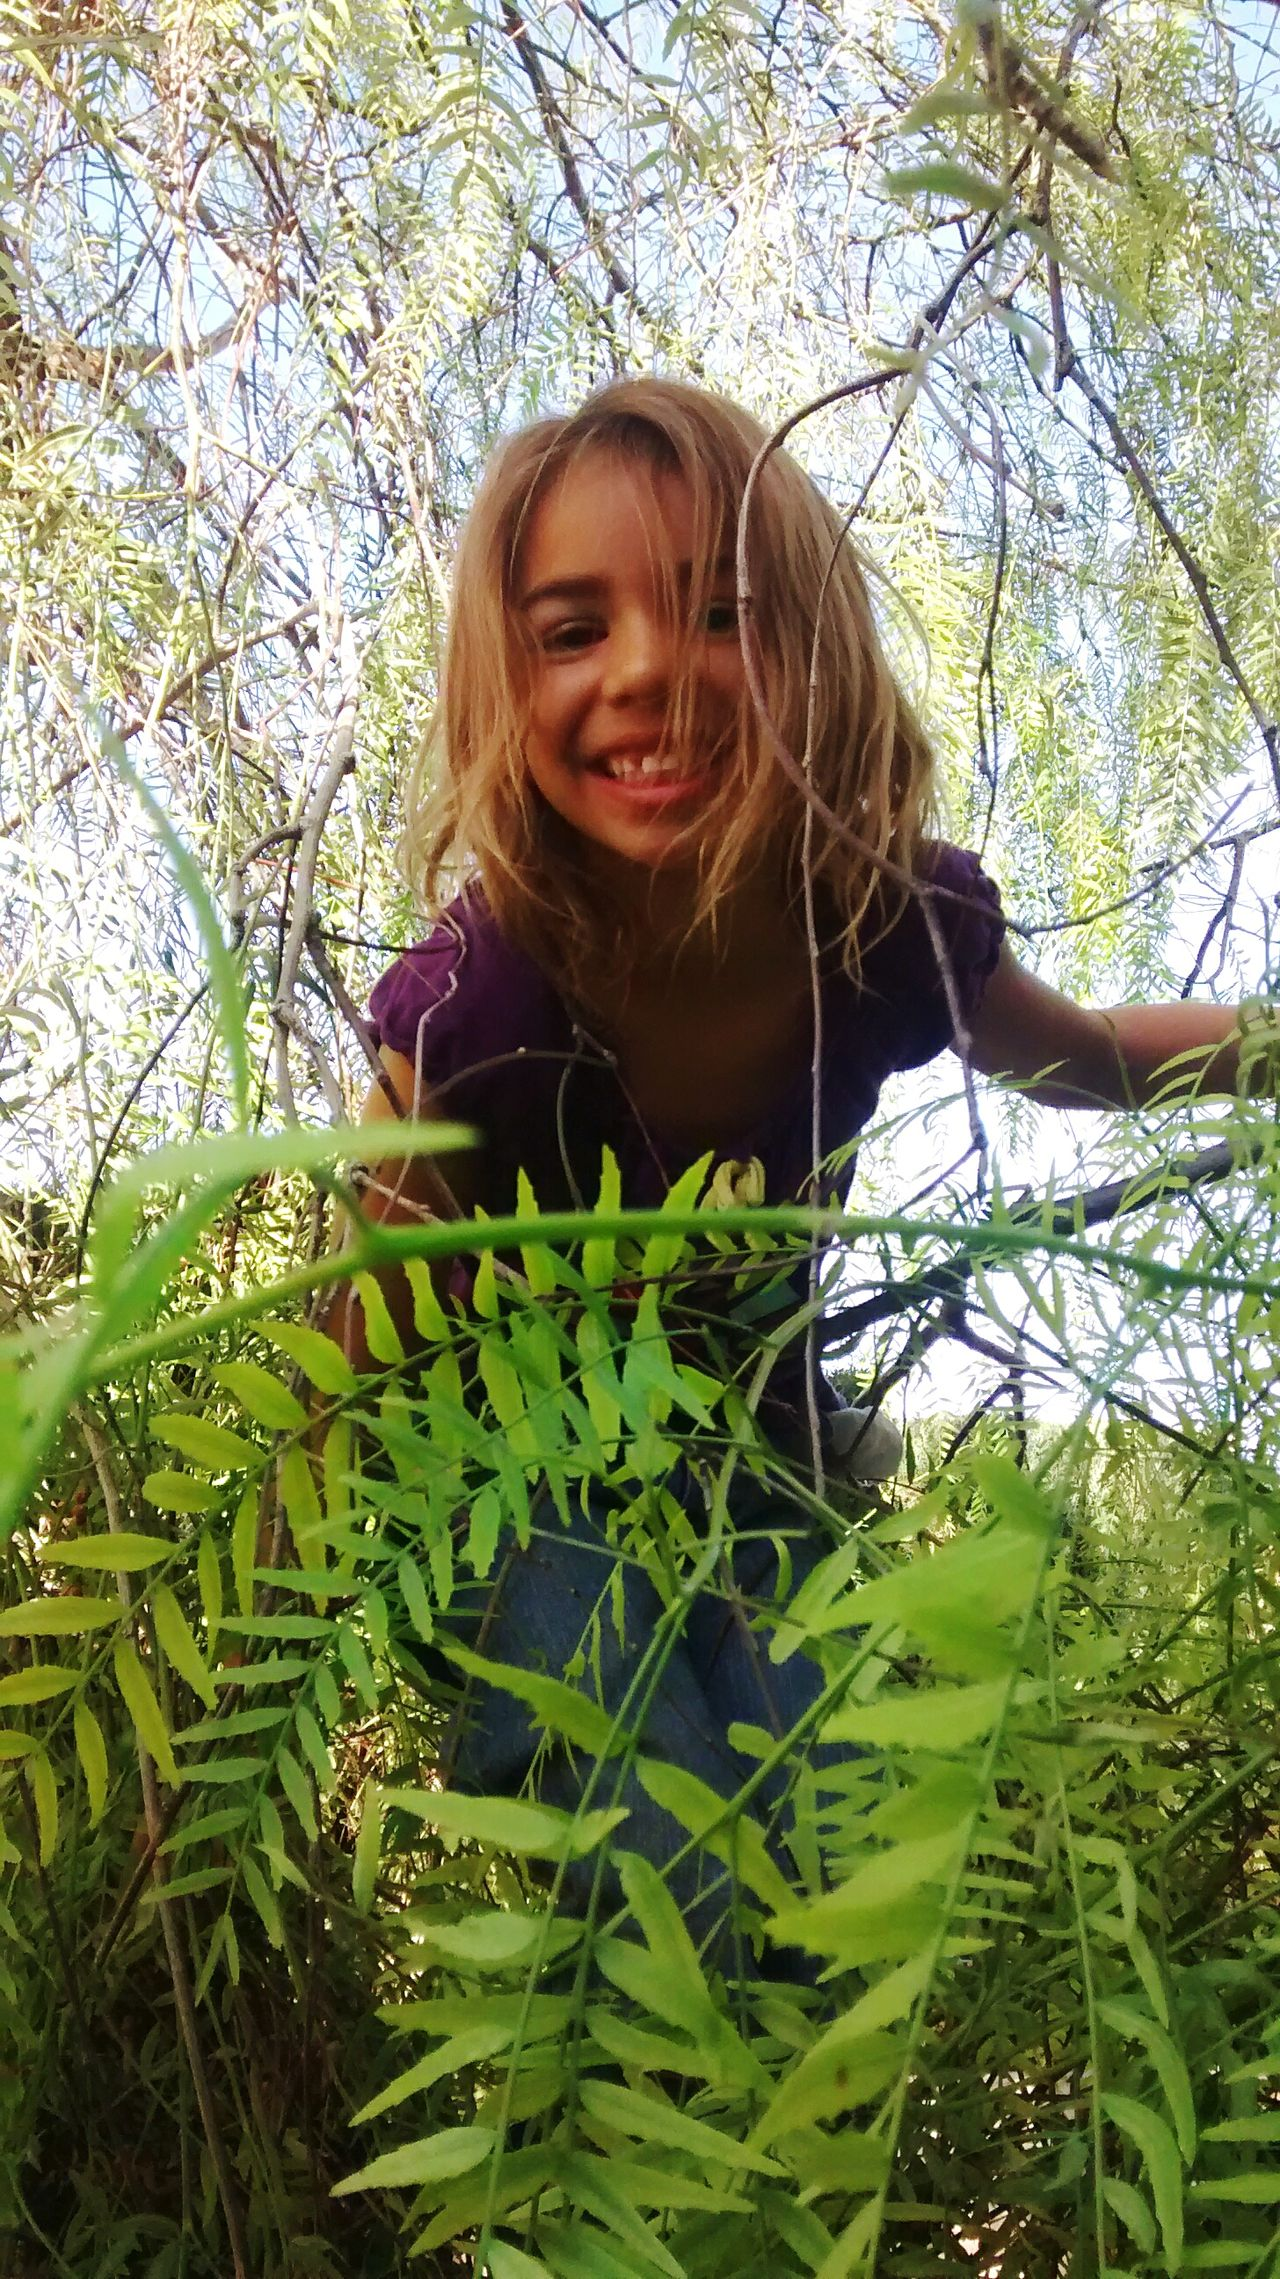 Climbing Trees Children Photography Children's Portraits Playing Outside Enjoying Nature Children Playing CHILDS SMILE Kids Being Kids Kids Having Fun Outdoor Activity My Kids In A Tree Beautiful Girl Having Fun Playing Hide And Seek Hiding In Plain Sight Sommergefühle